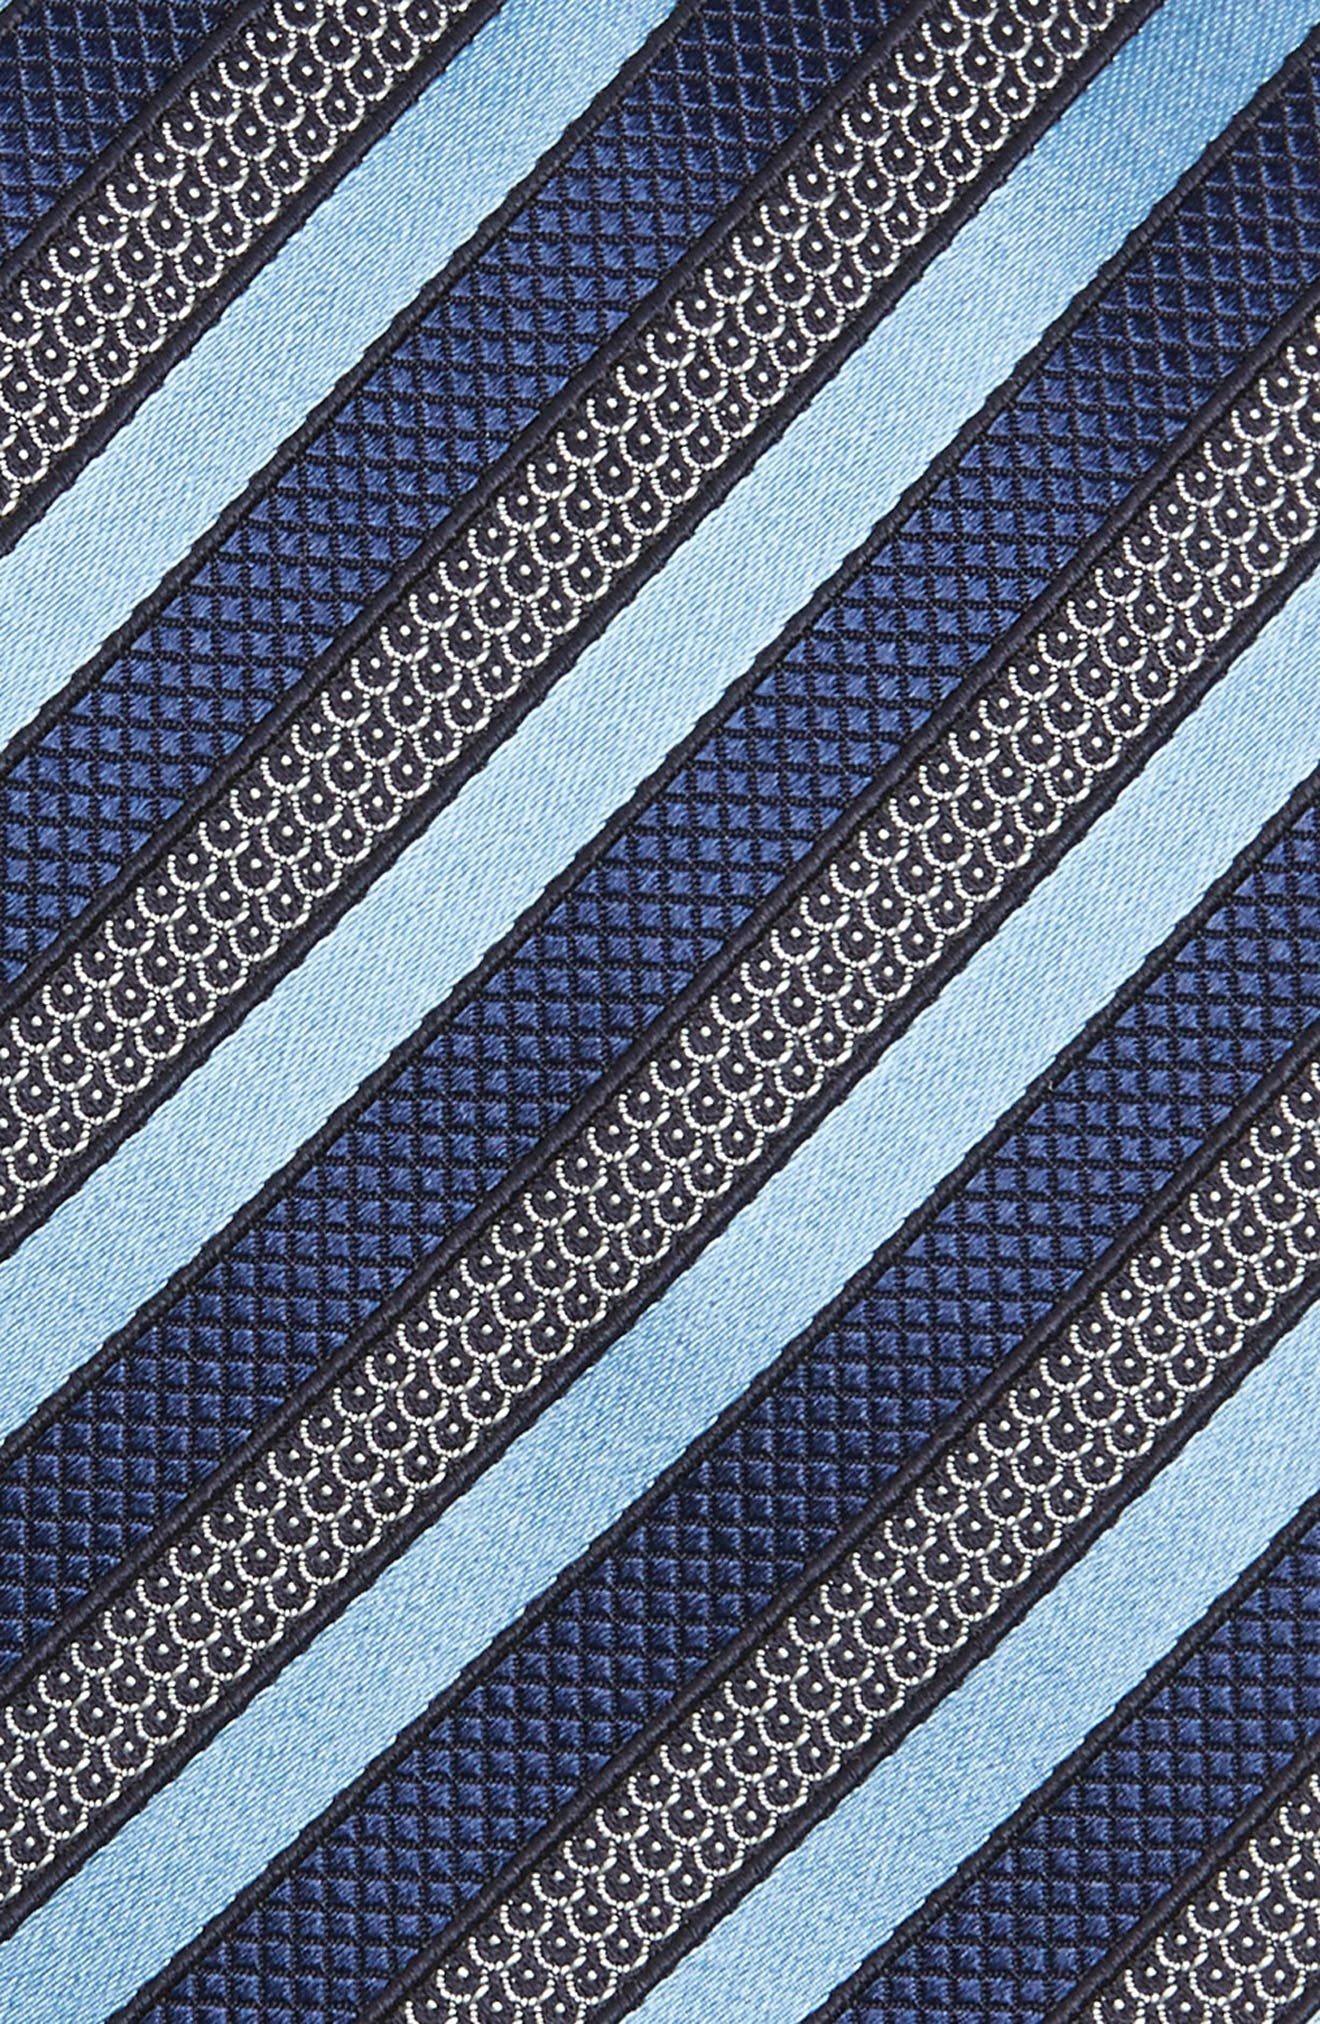 Stripe Silk Tie,                             Alternate thumbnail 2, color,                             424